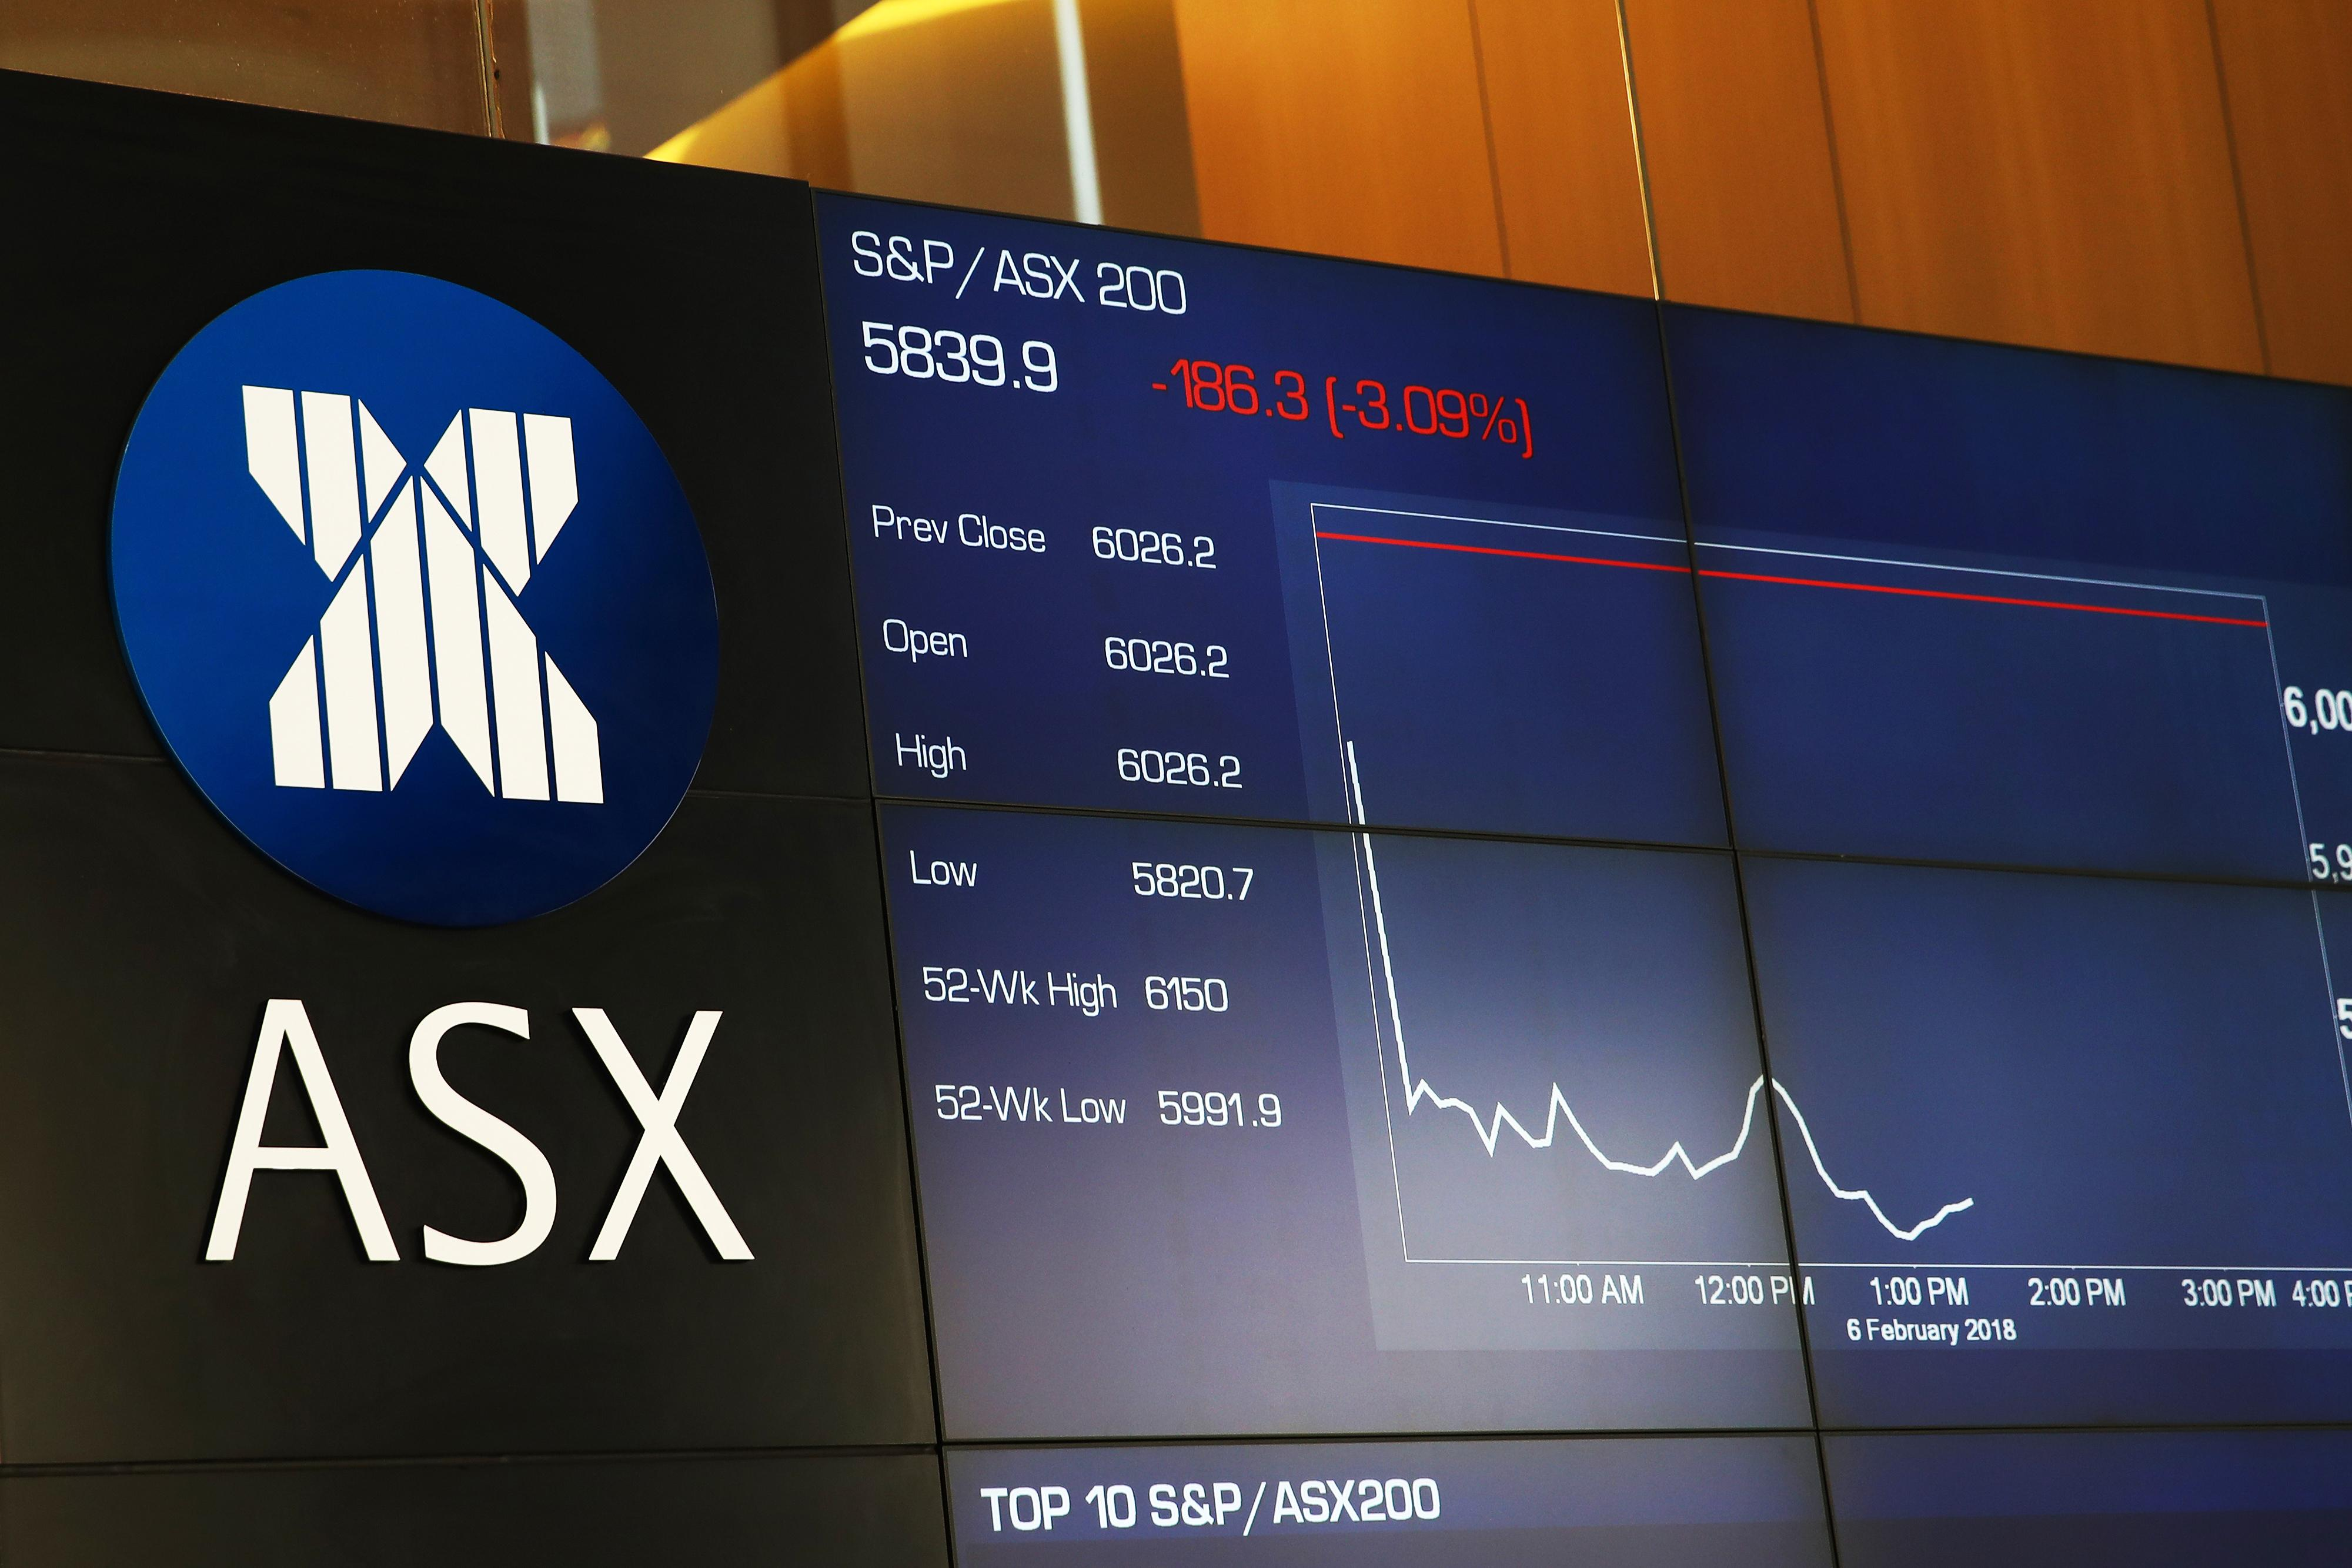 NIB (ASX: NHF) share price down after full-year results